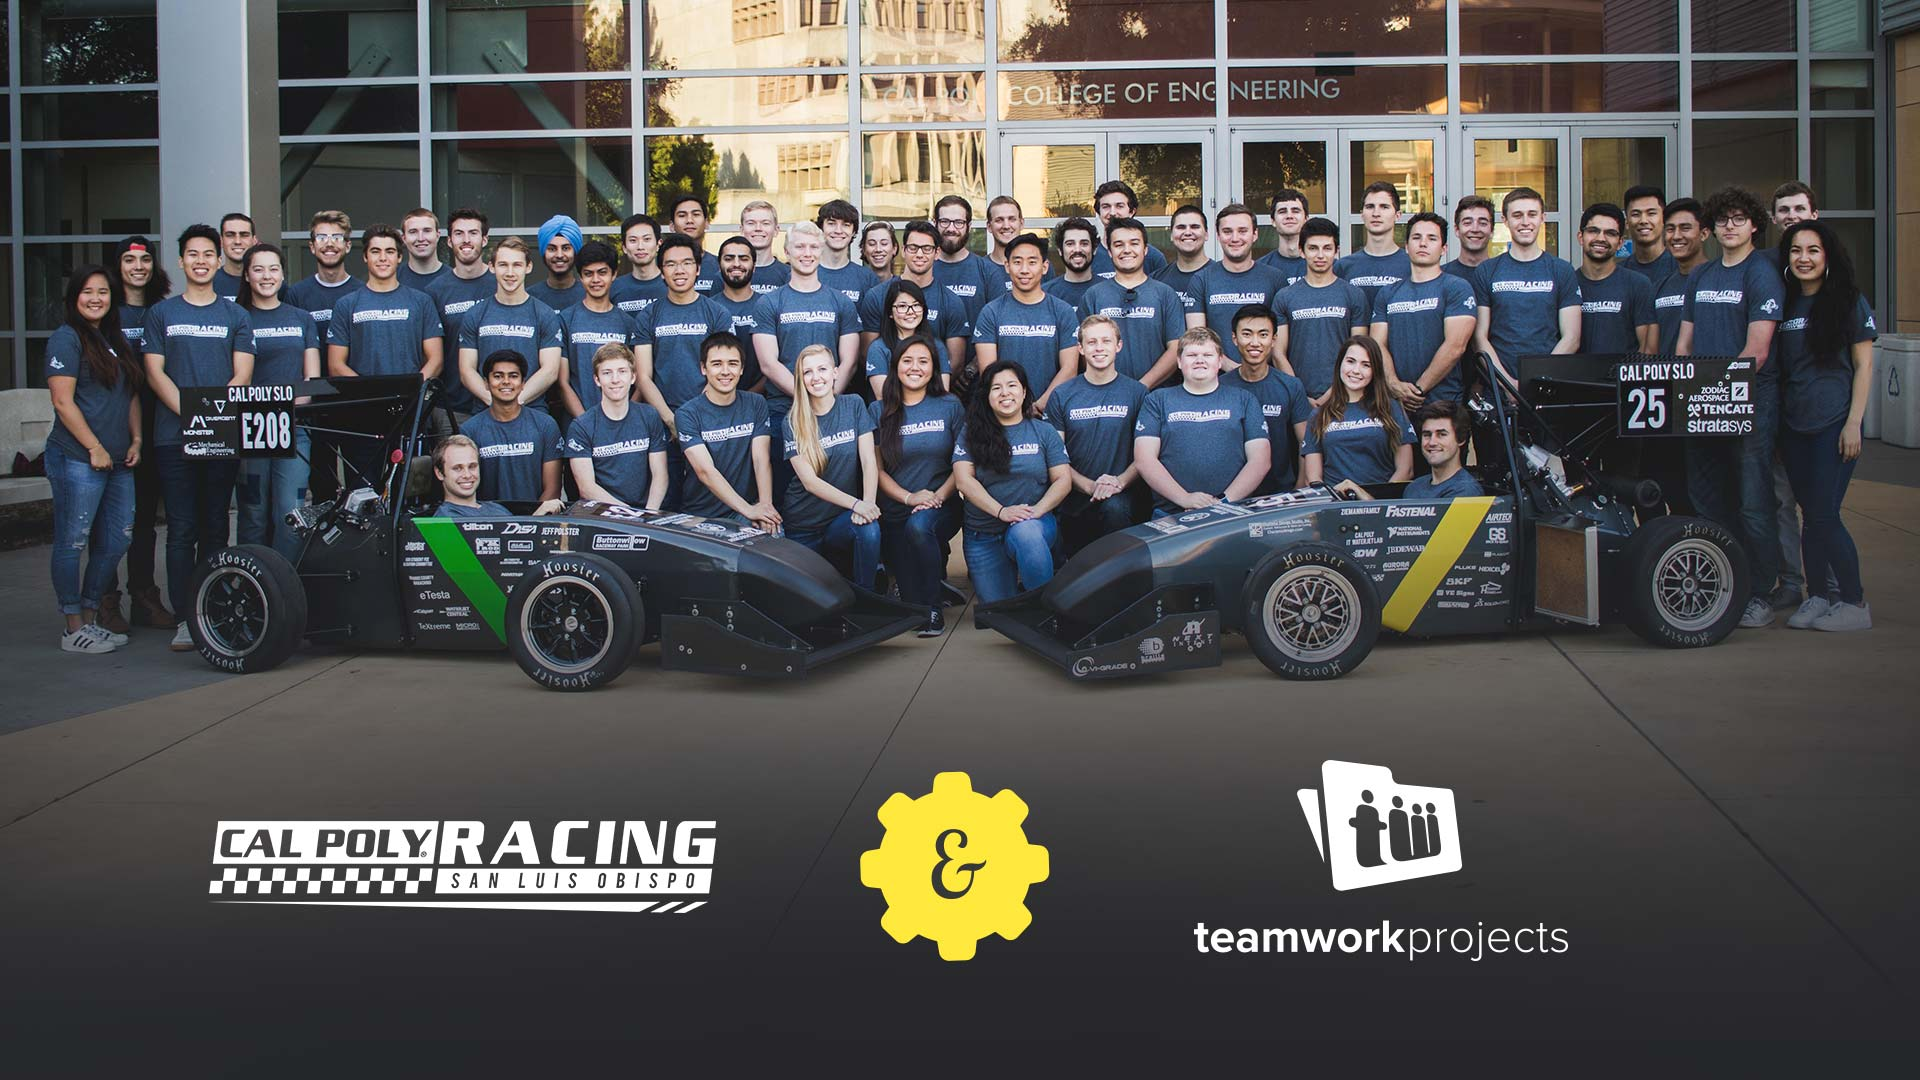 Cal Poly Racing Team and Teamwork Projects | Teamwork.com